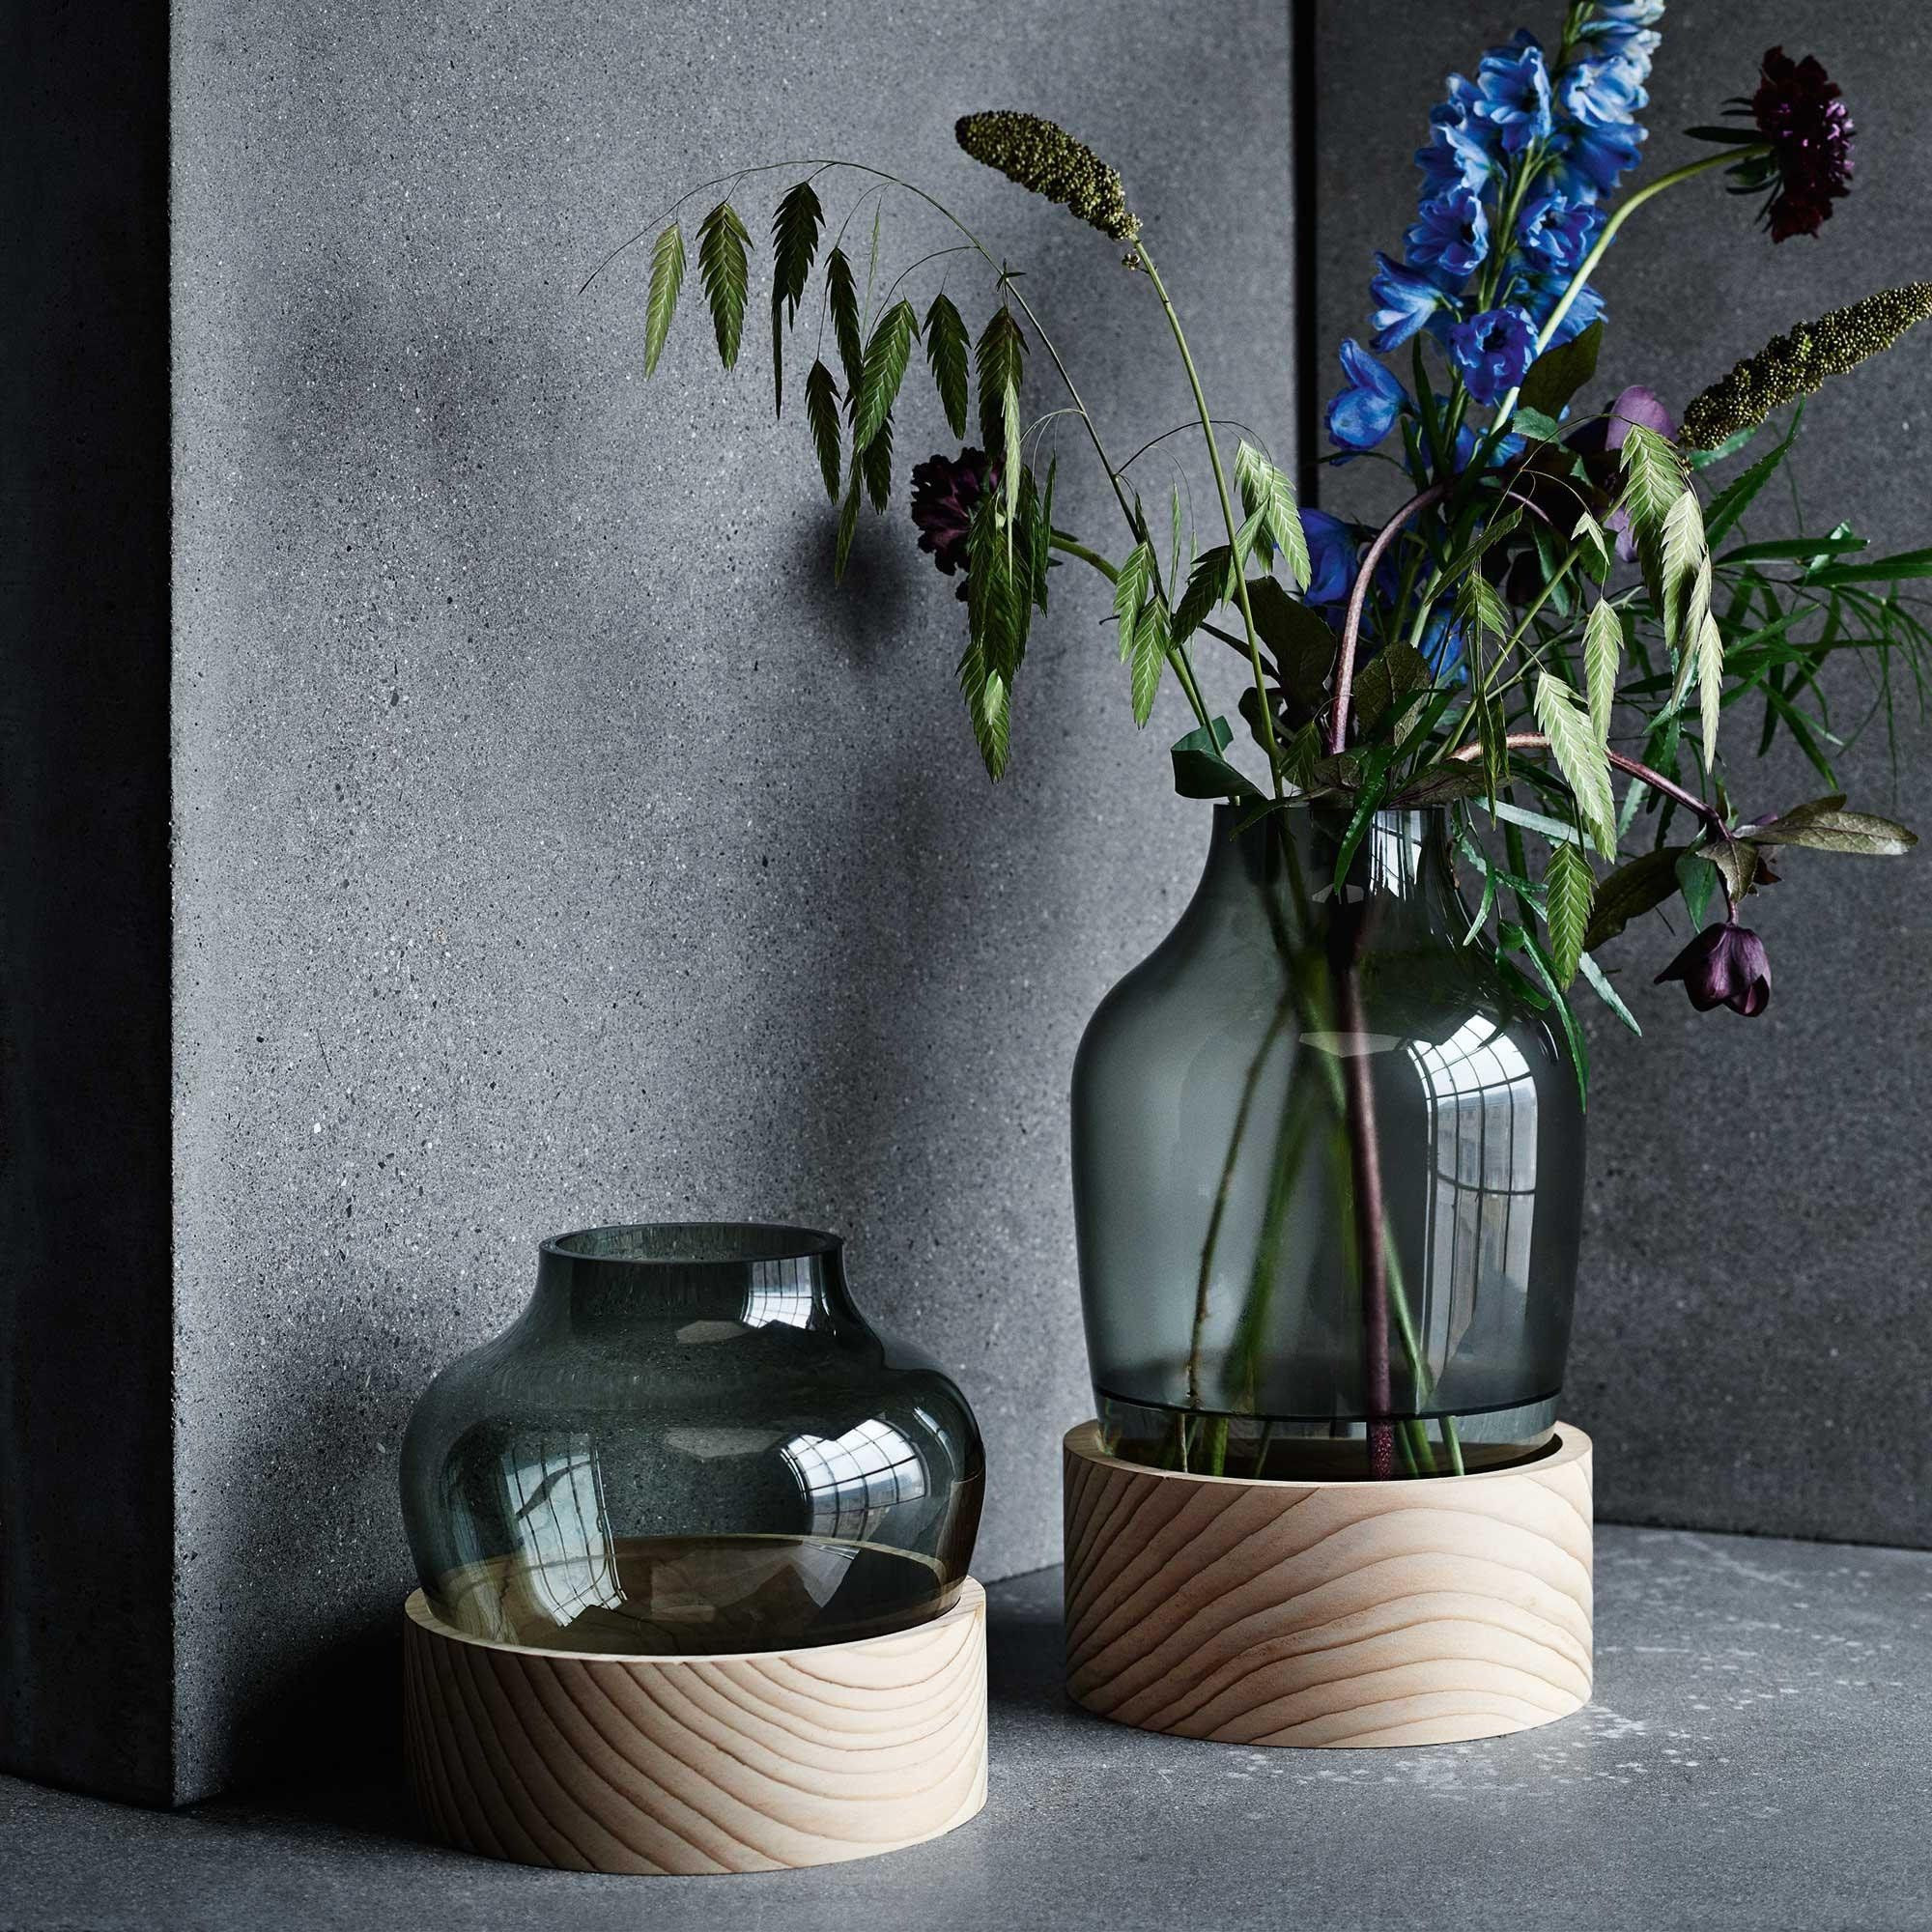 Ceramic Bag Vase Of Fritz Hansen Vase Ambientedirect In Fritz Hansen Fritz Hansen Vase